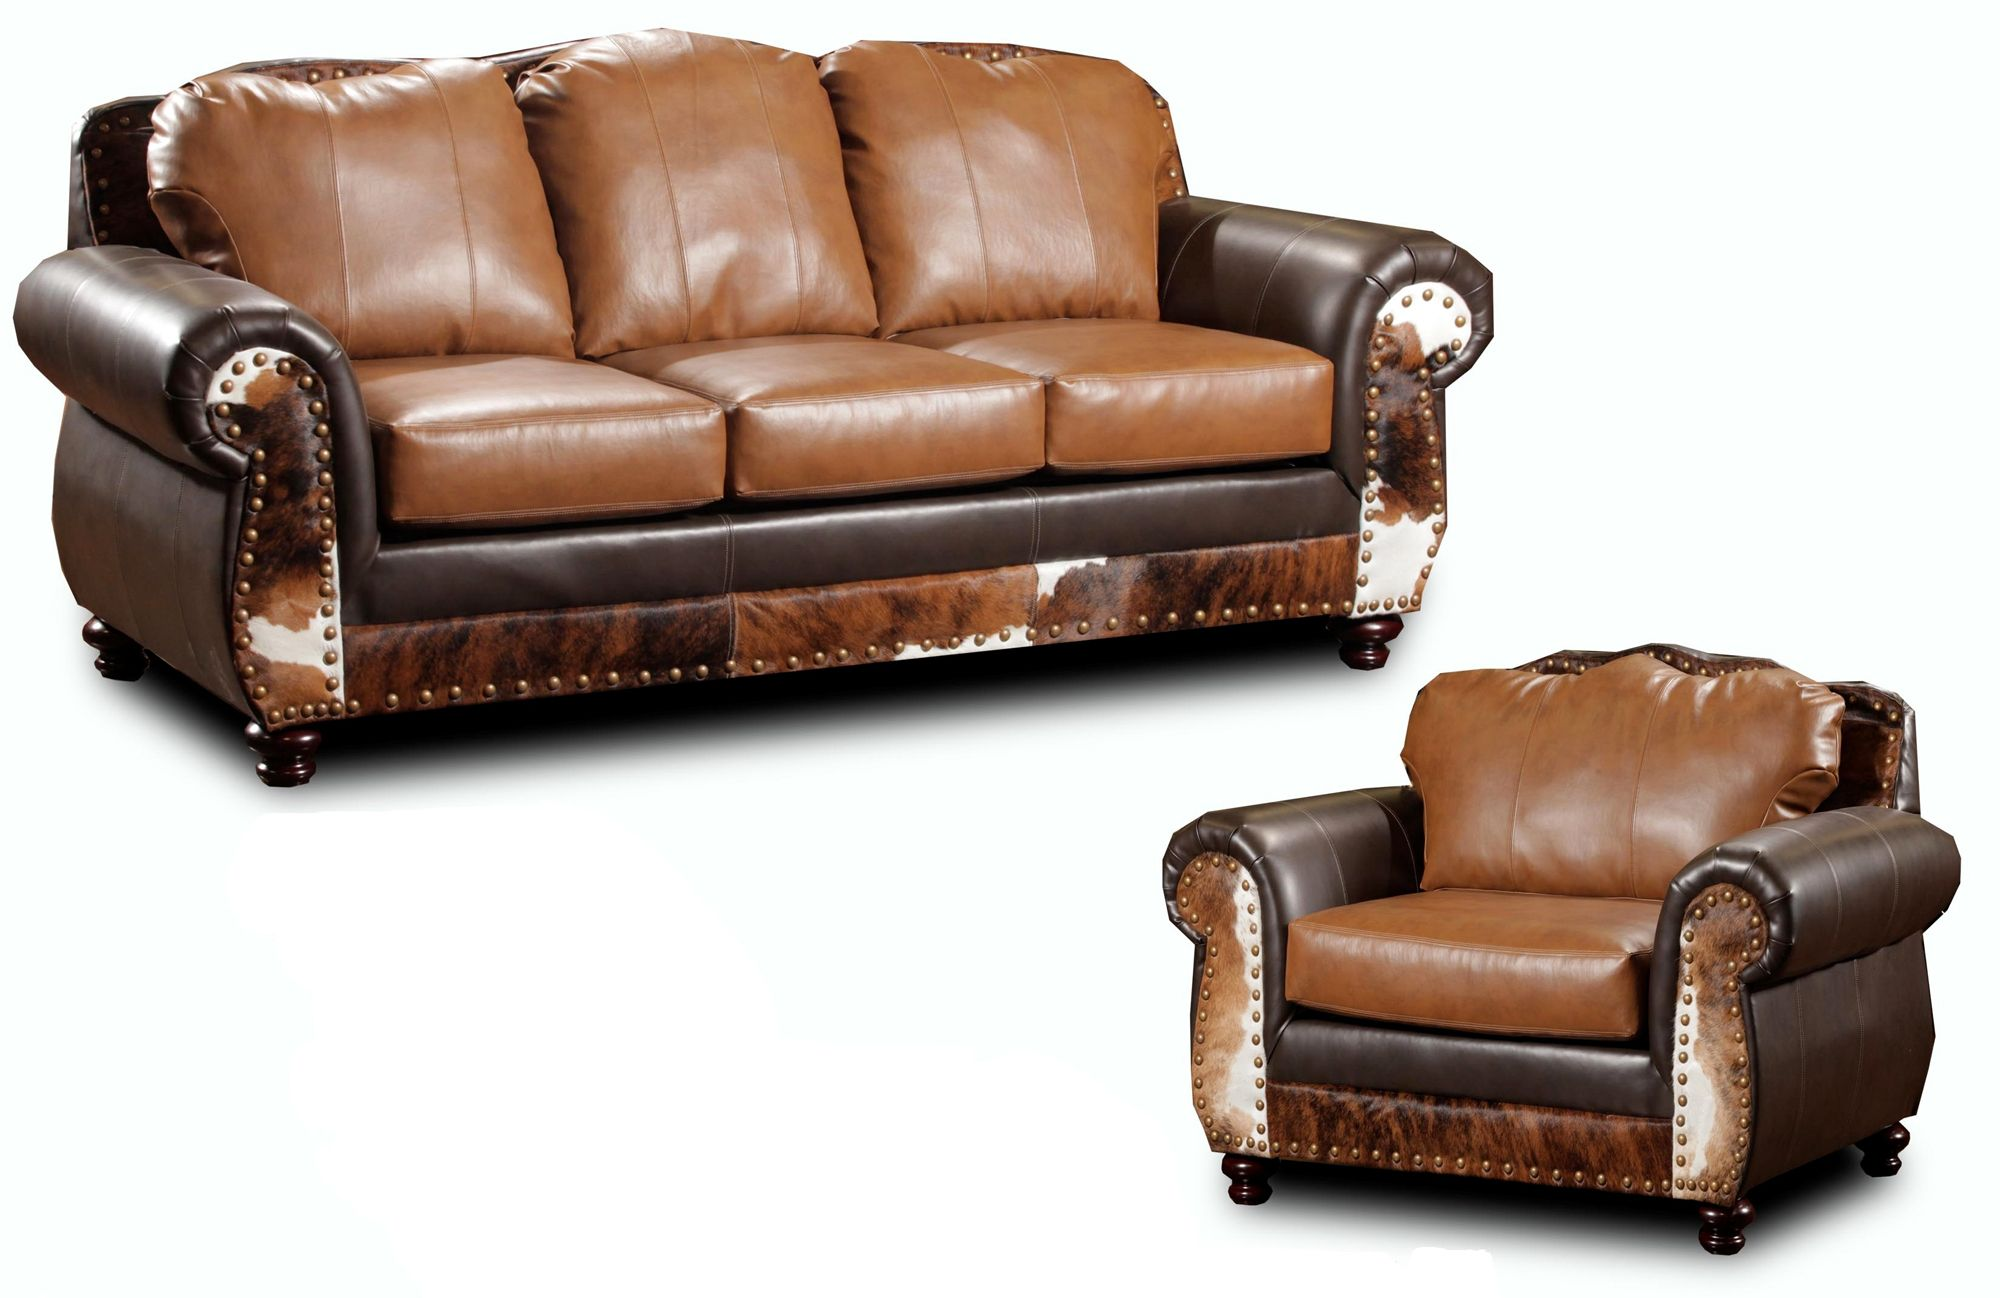 Rustic Leather Furniture | Denver Rustic Lodge Leather Sofa And Chair   155869/155834